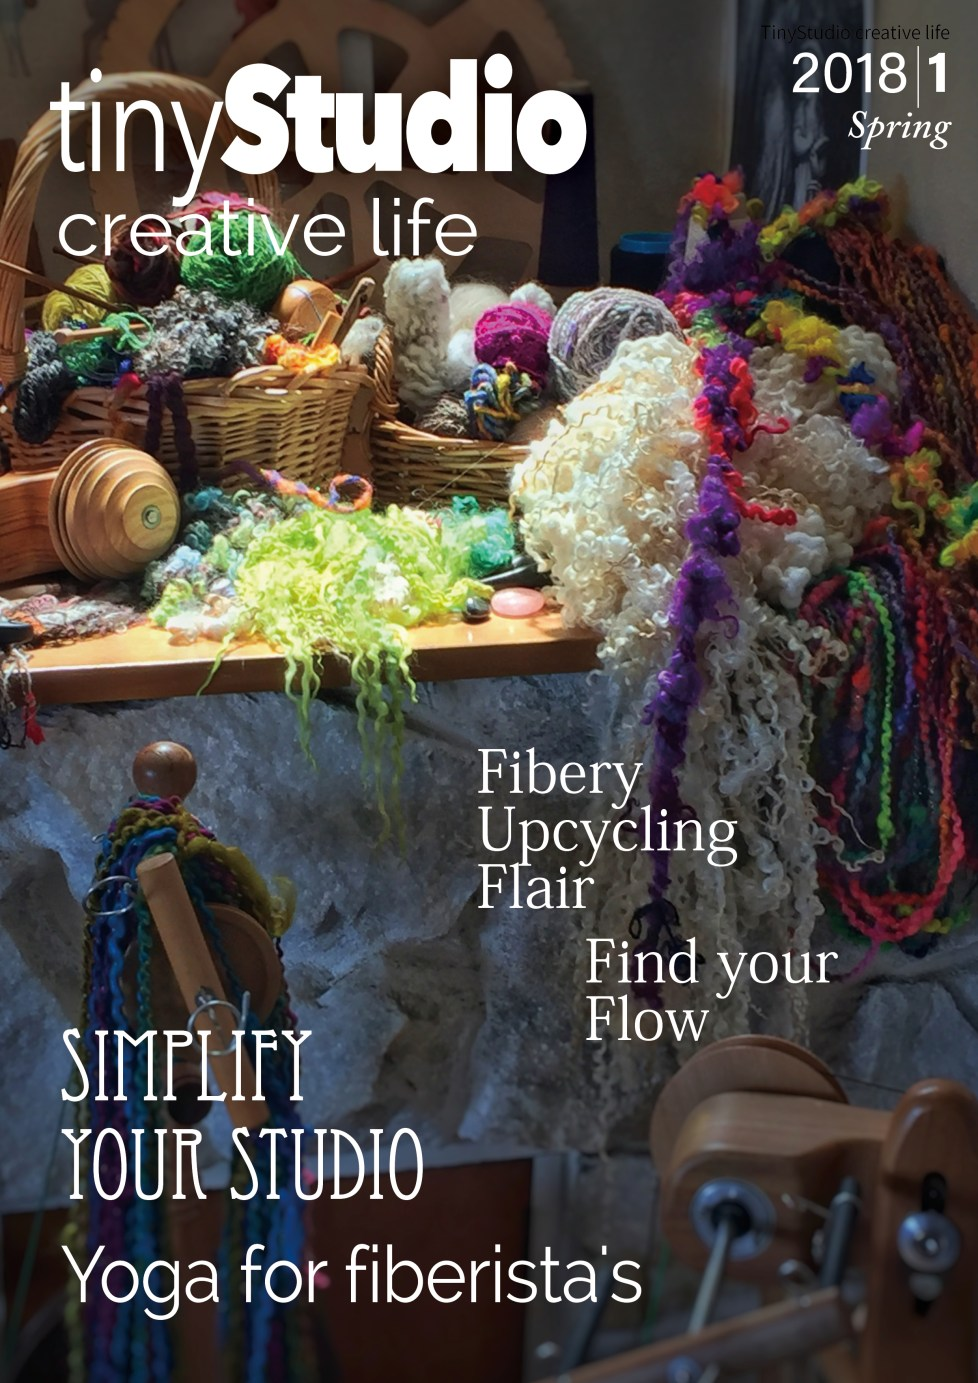 tinyStudio Magazine Subscription